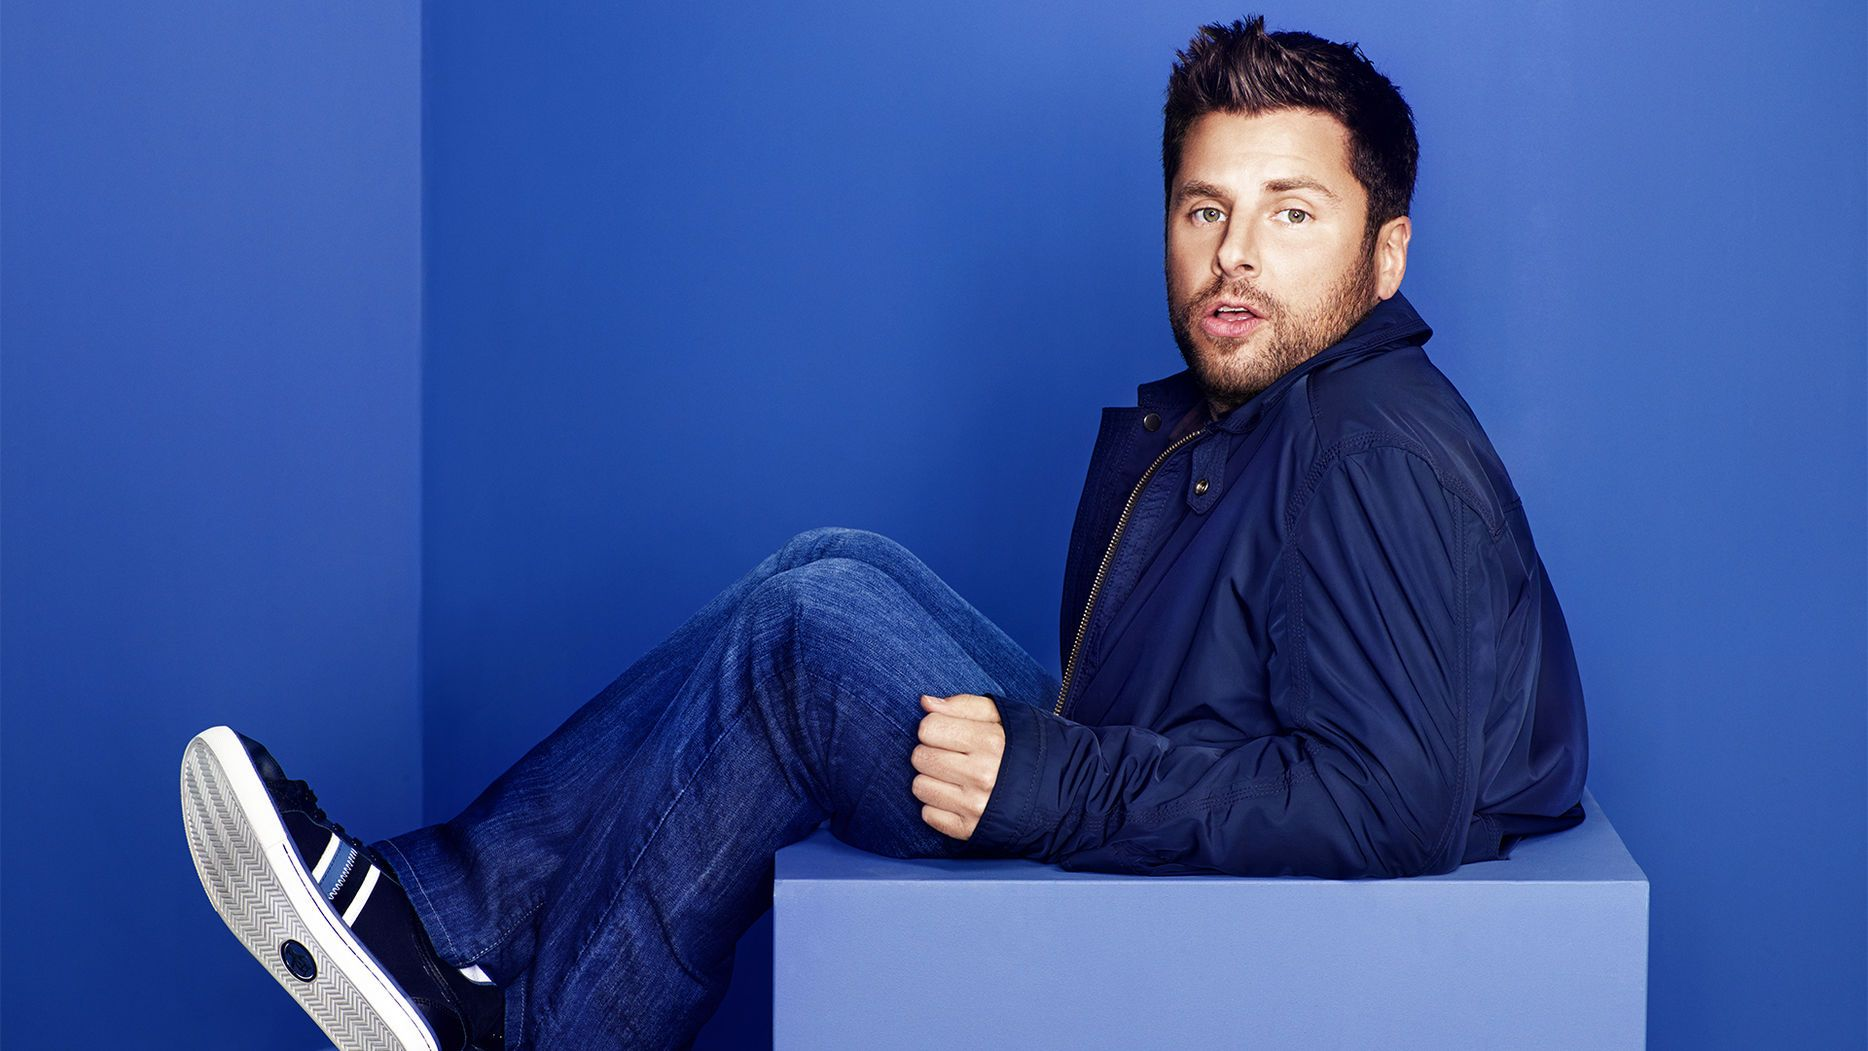 James Roday, the actor behind Psych's Shawn Spencer played